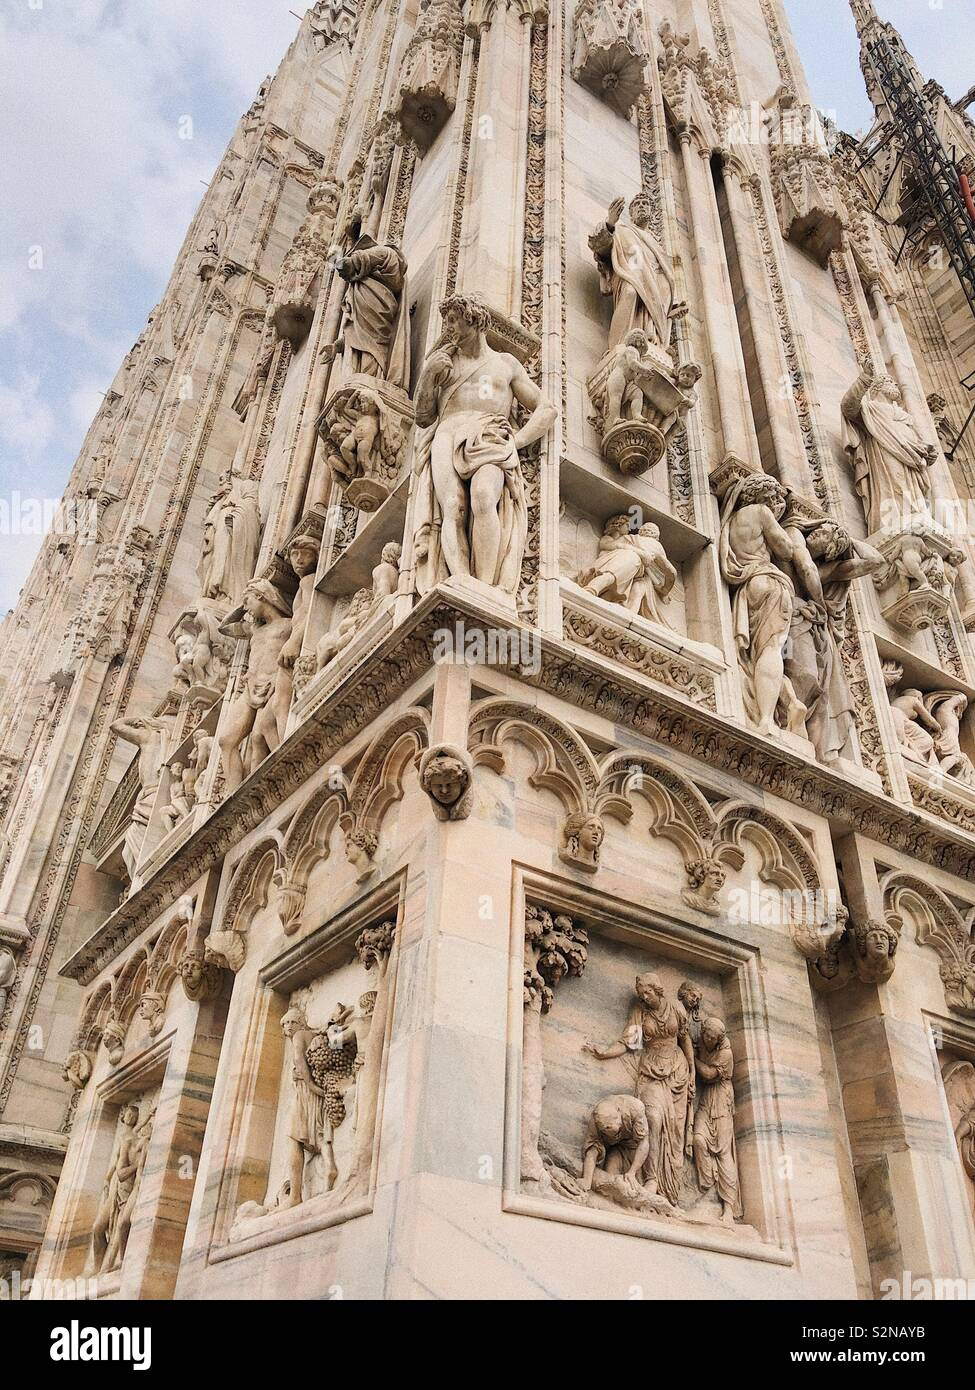 DUOMO DE MILANO - the details of the most detailed monument - Stock Image